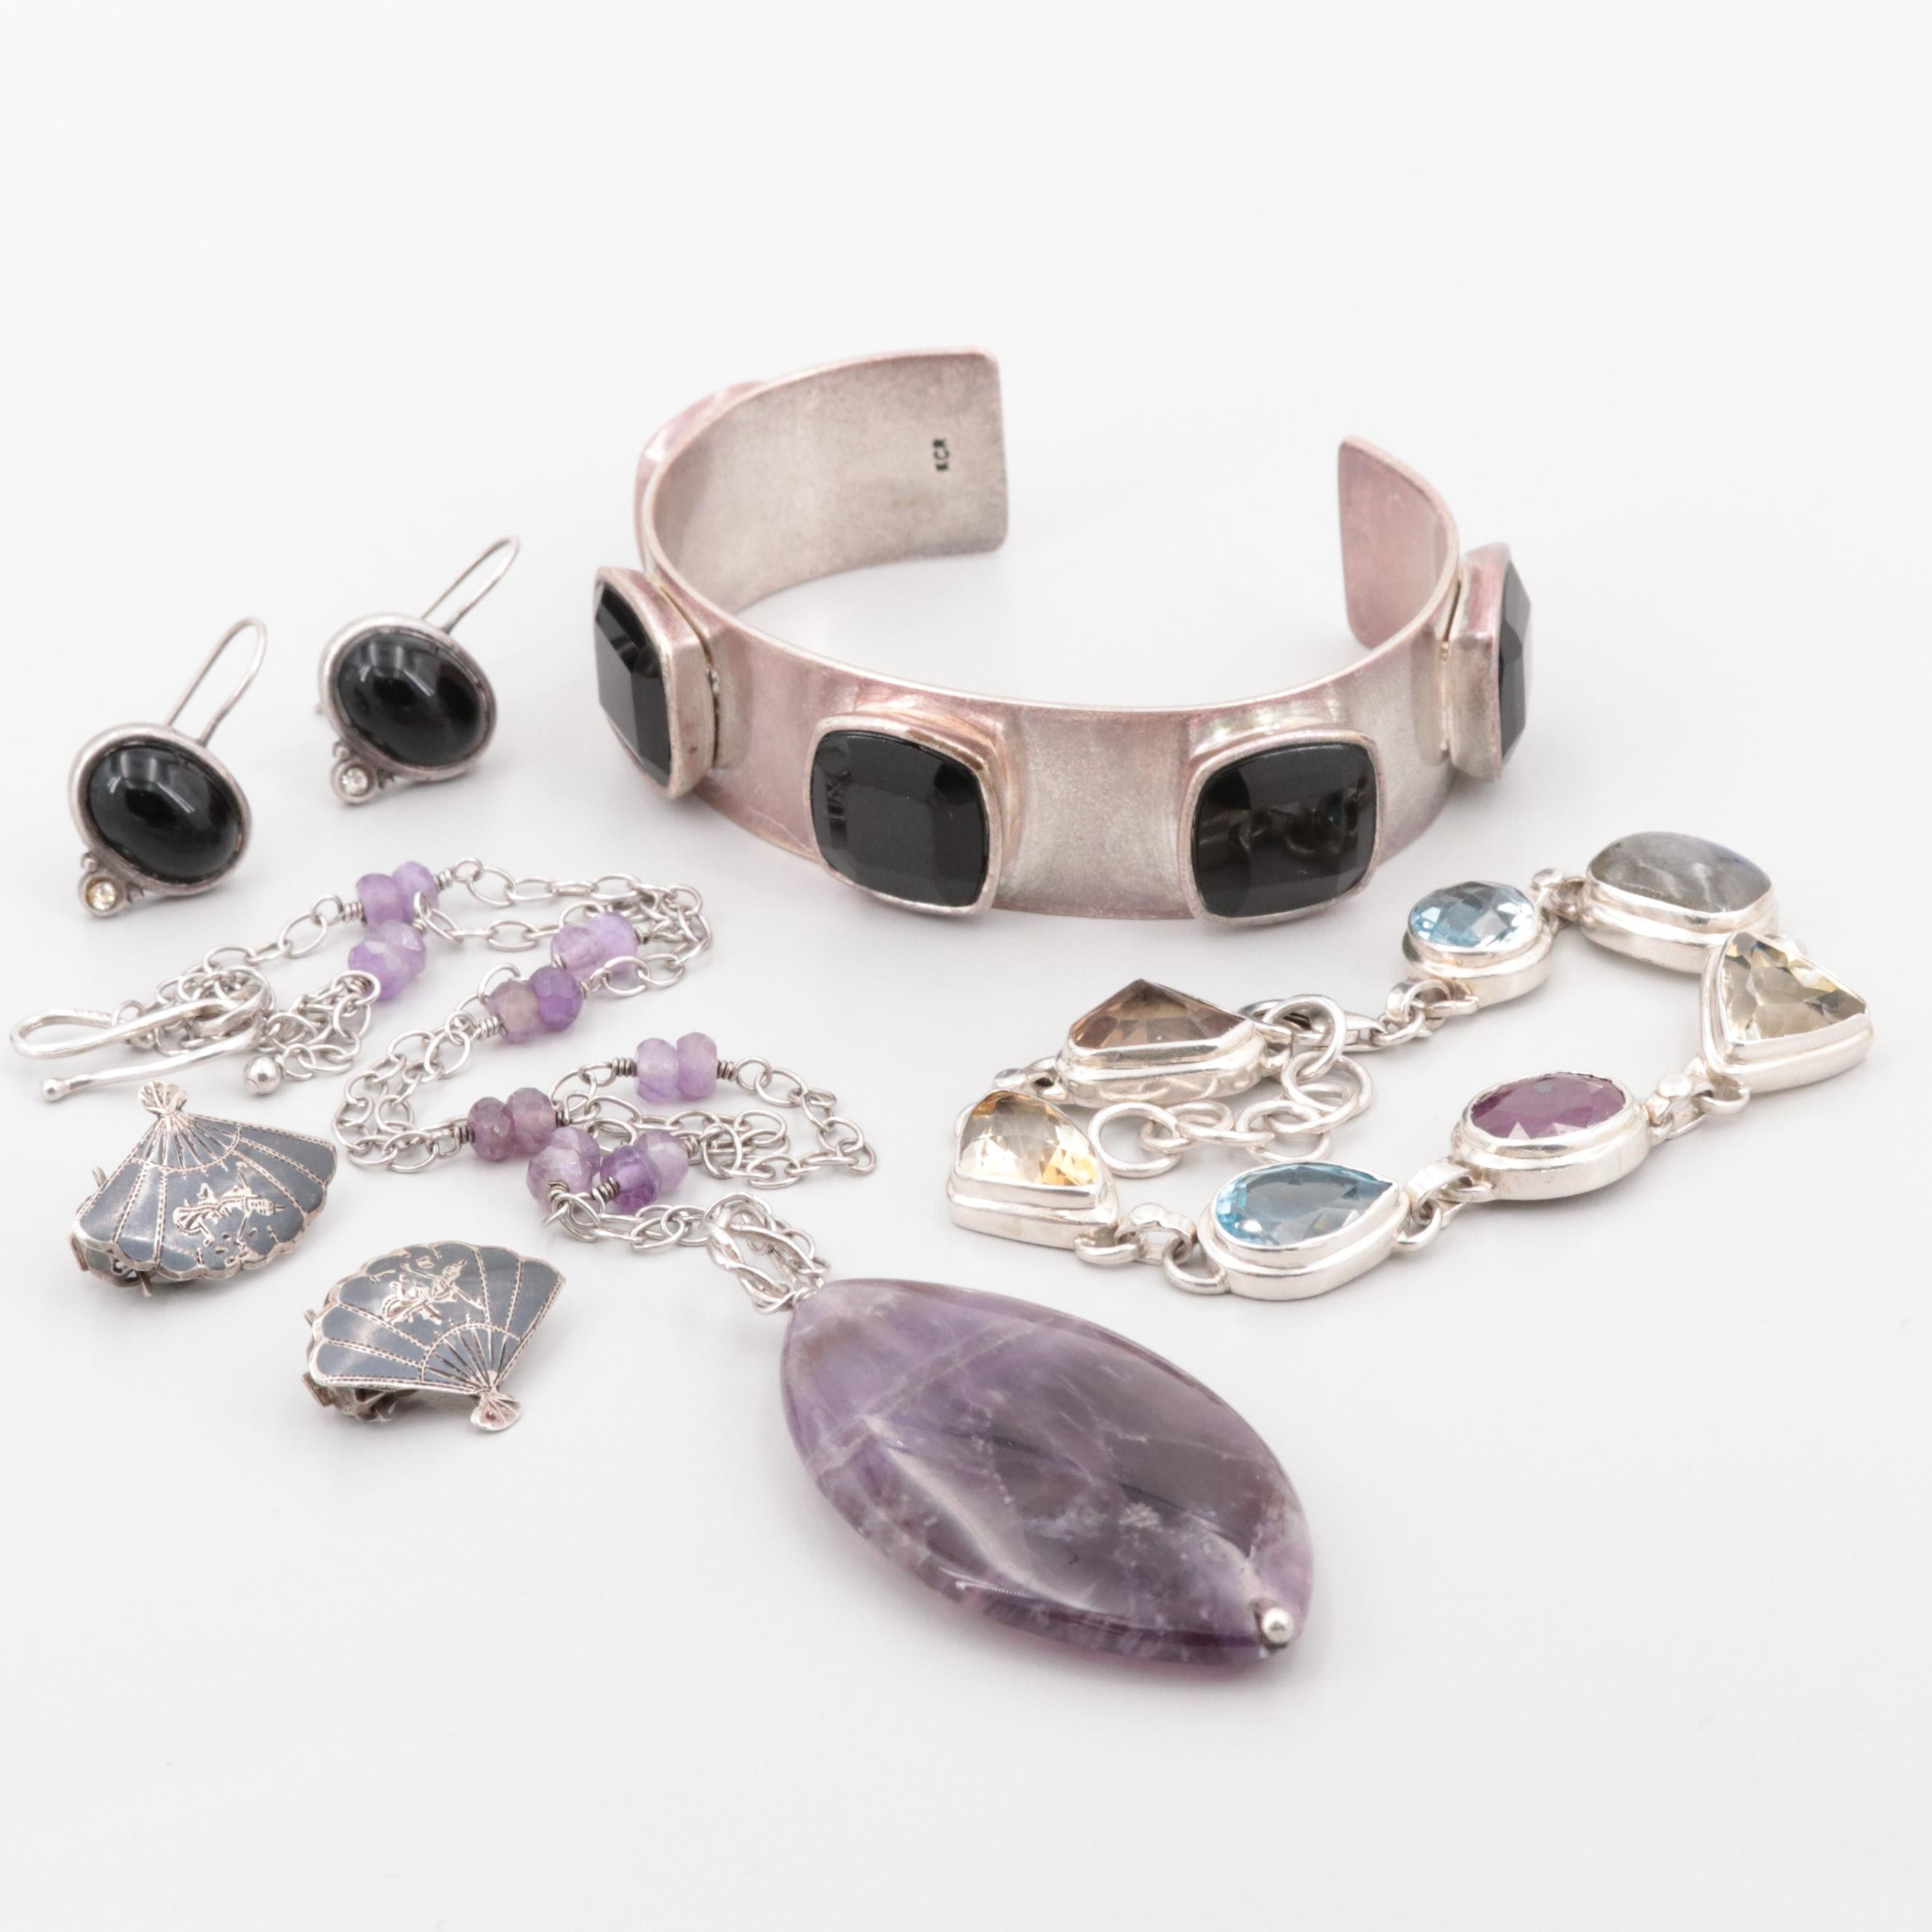 Sterling Silver and Silver Tone Multi-Gemstone Jewelry Including Amethyst